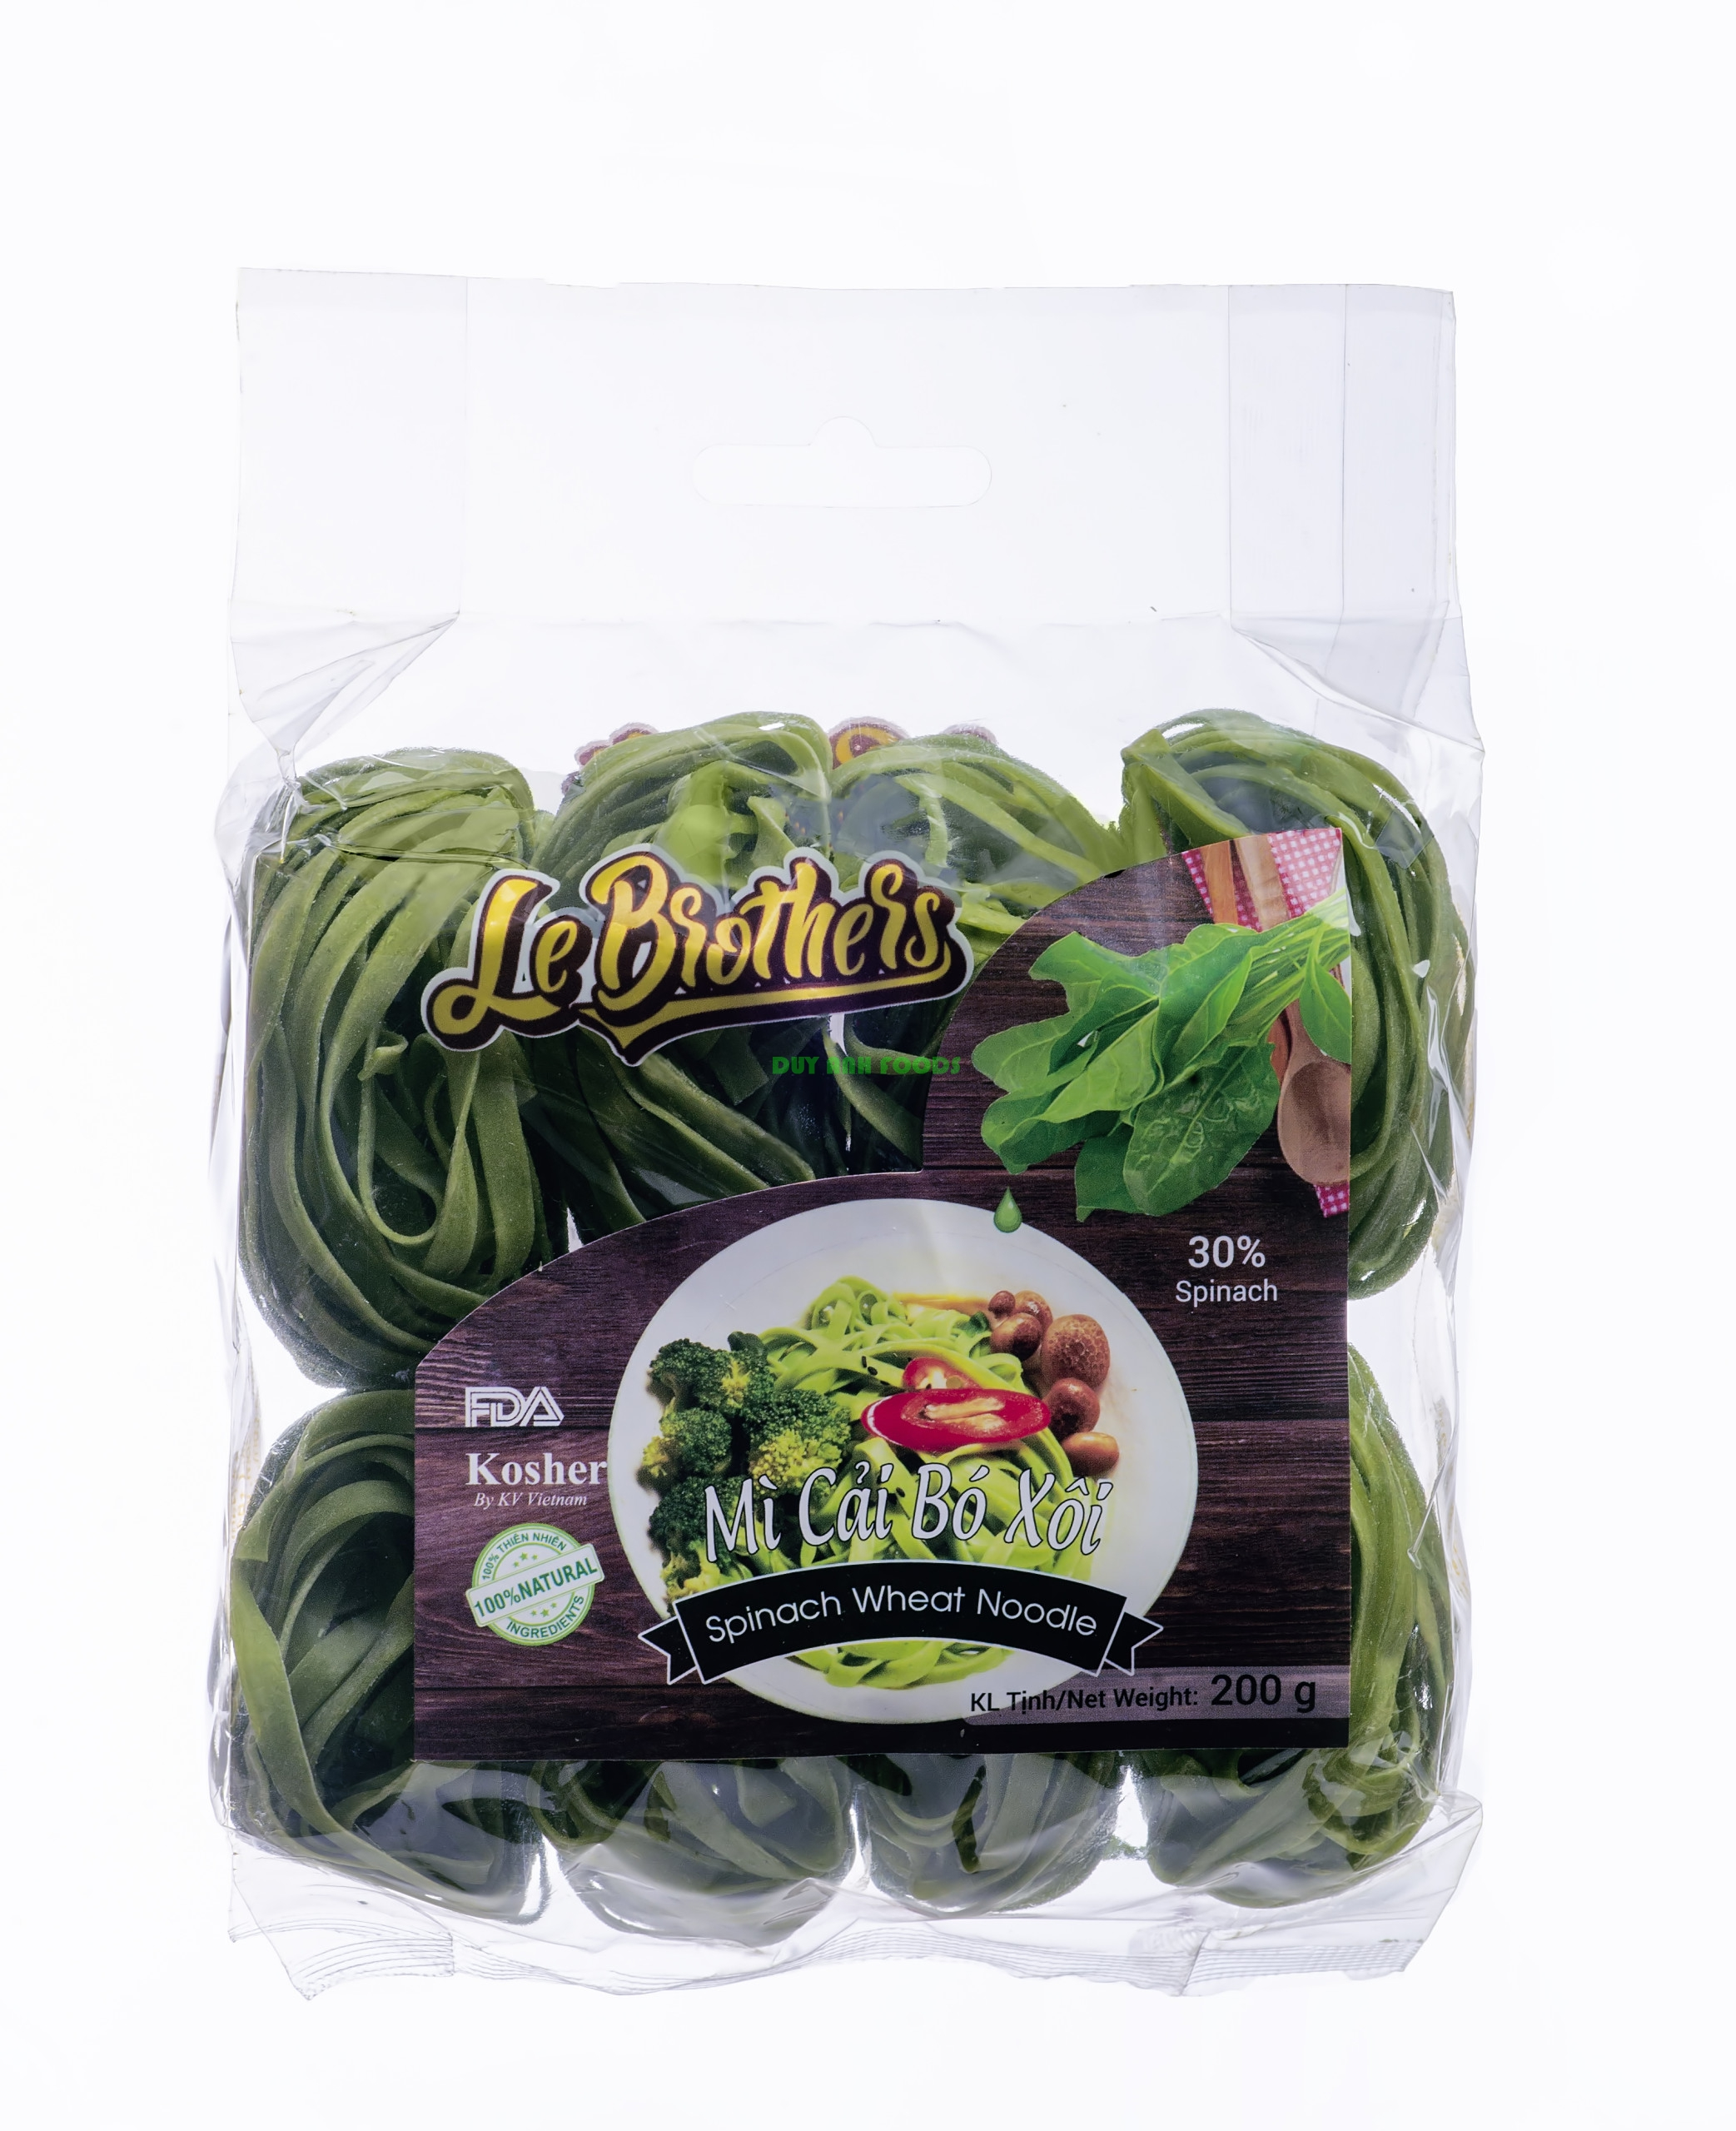 Spinach Wheat Noodle - VEGETABLES WHEAT NOODLE - NATURAL NOODLE